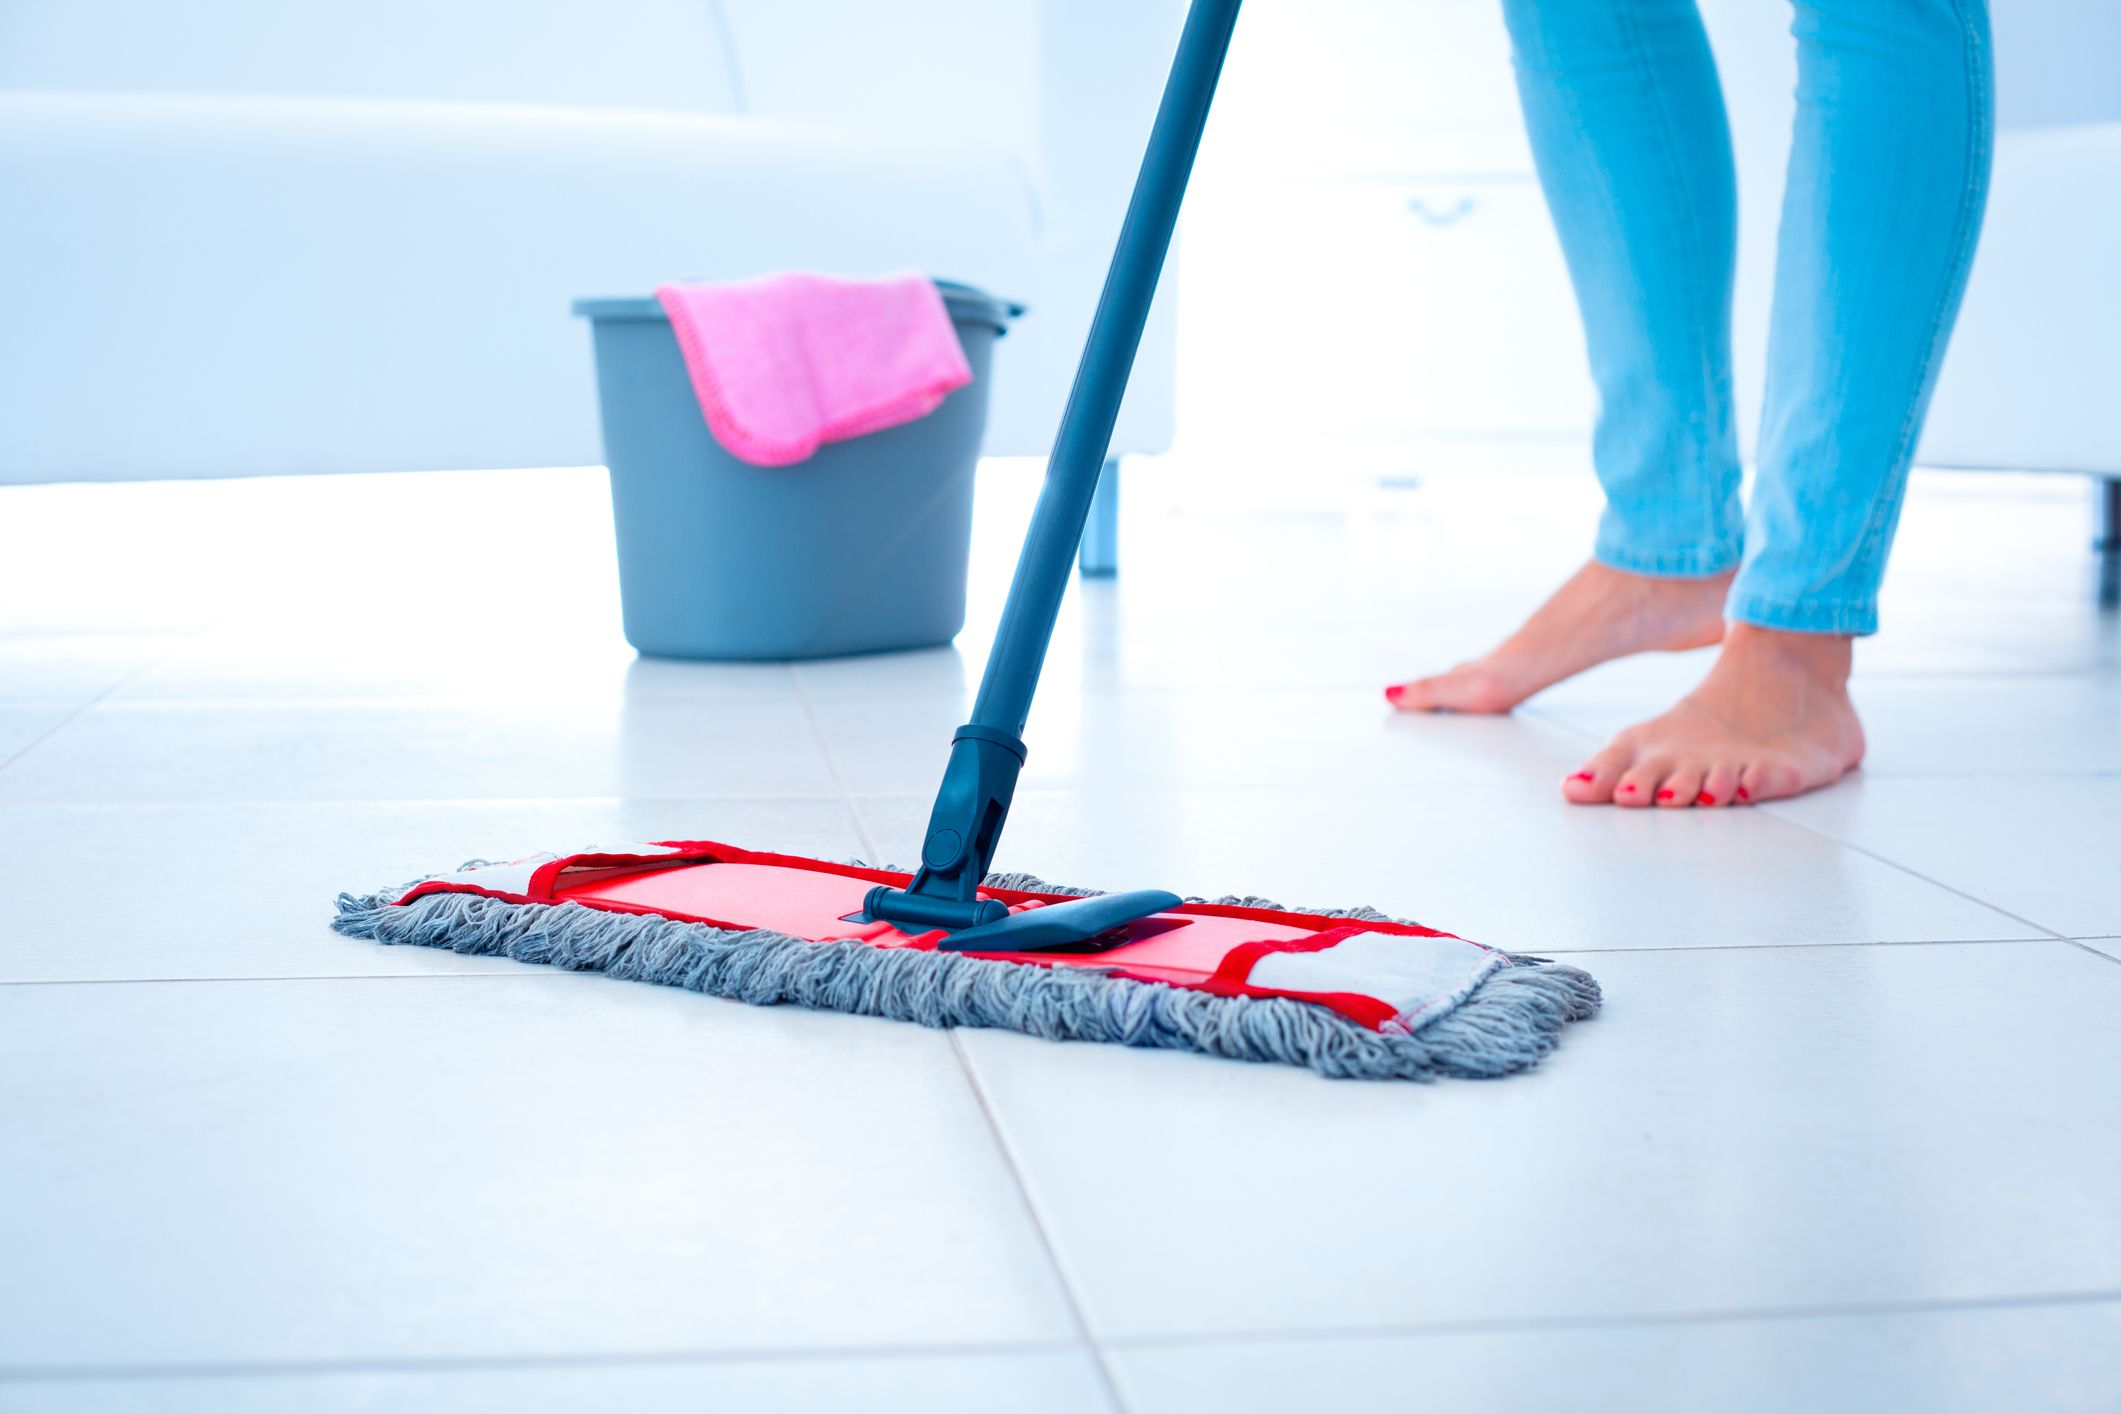 How To Clean Laminate Floors, What's Best To Clean Laminate Flooring